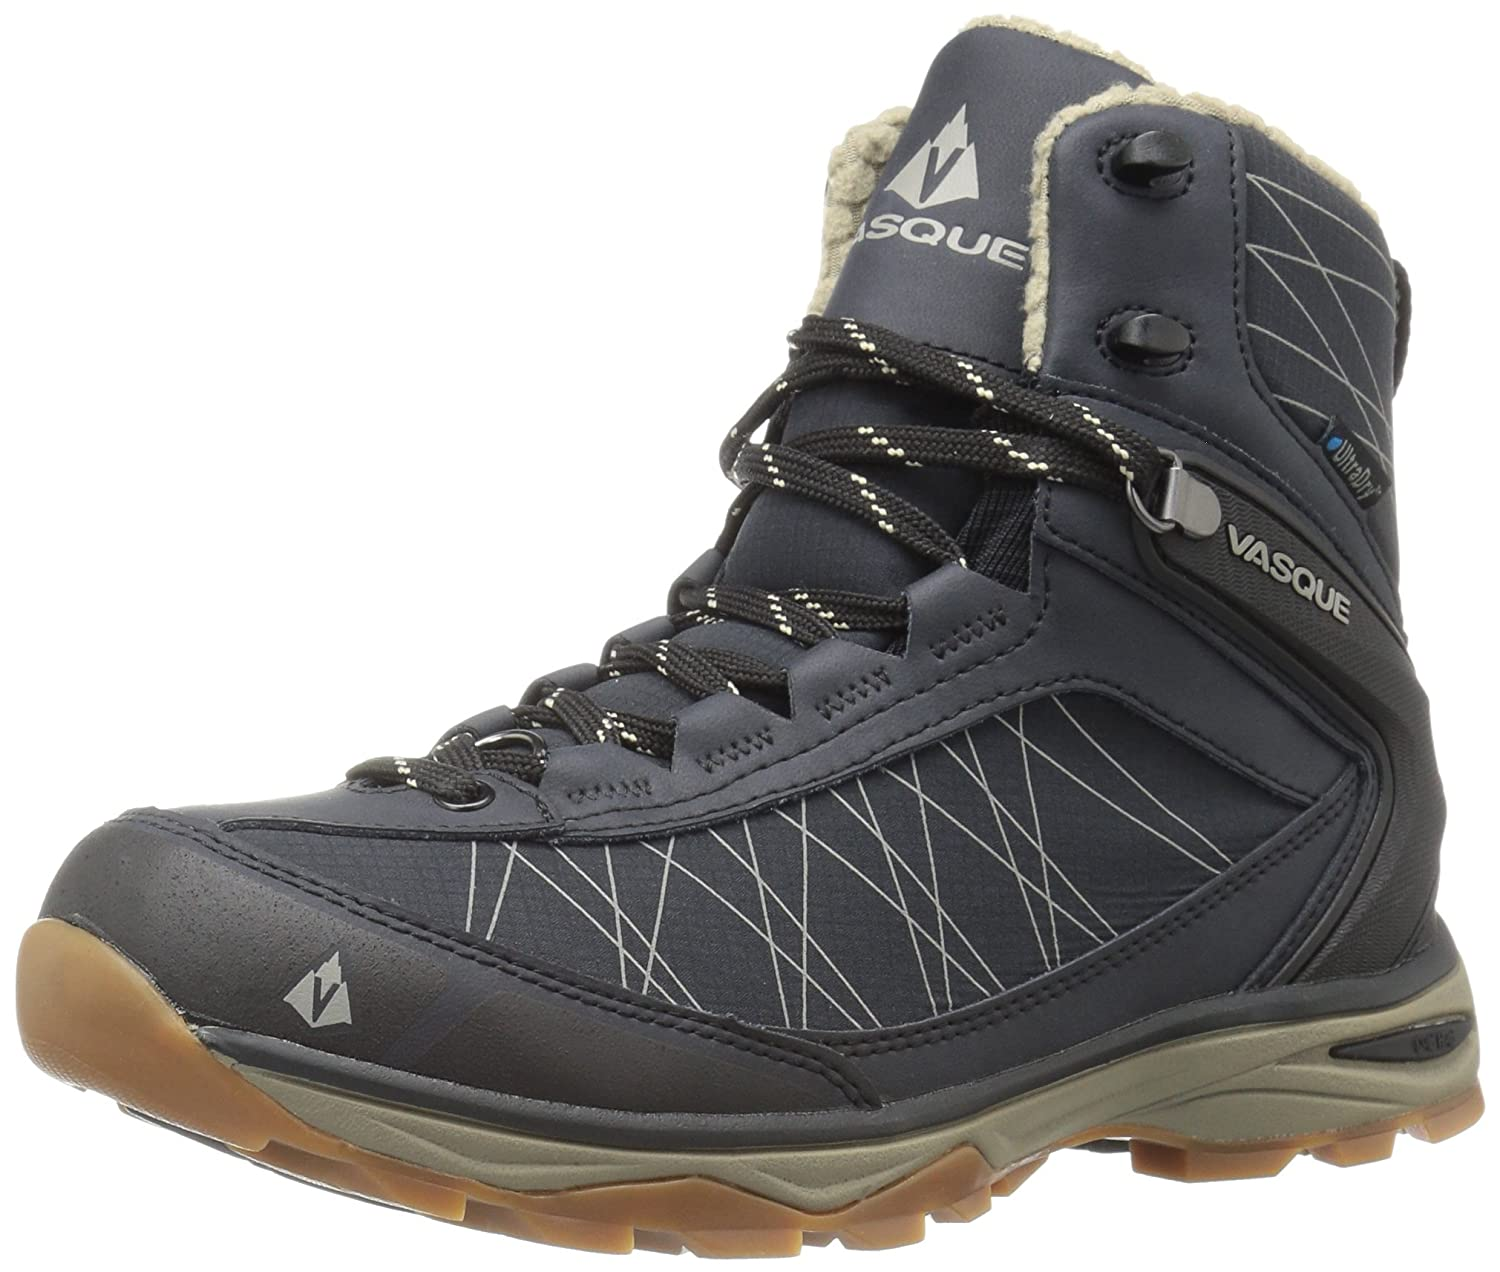 Vasque Women's Coldspark UltraDry Snow Boot B019QDNTI6 6 B(M) US|Anthracite/Aluminum